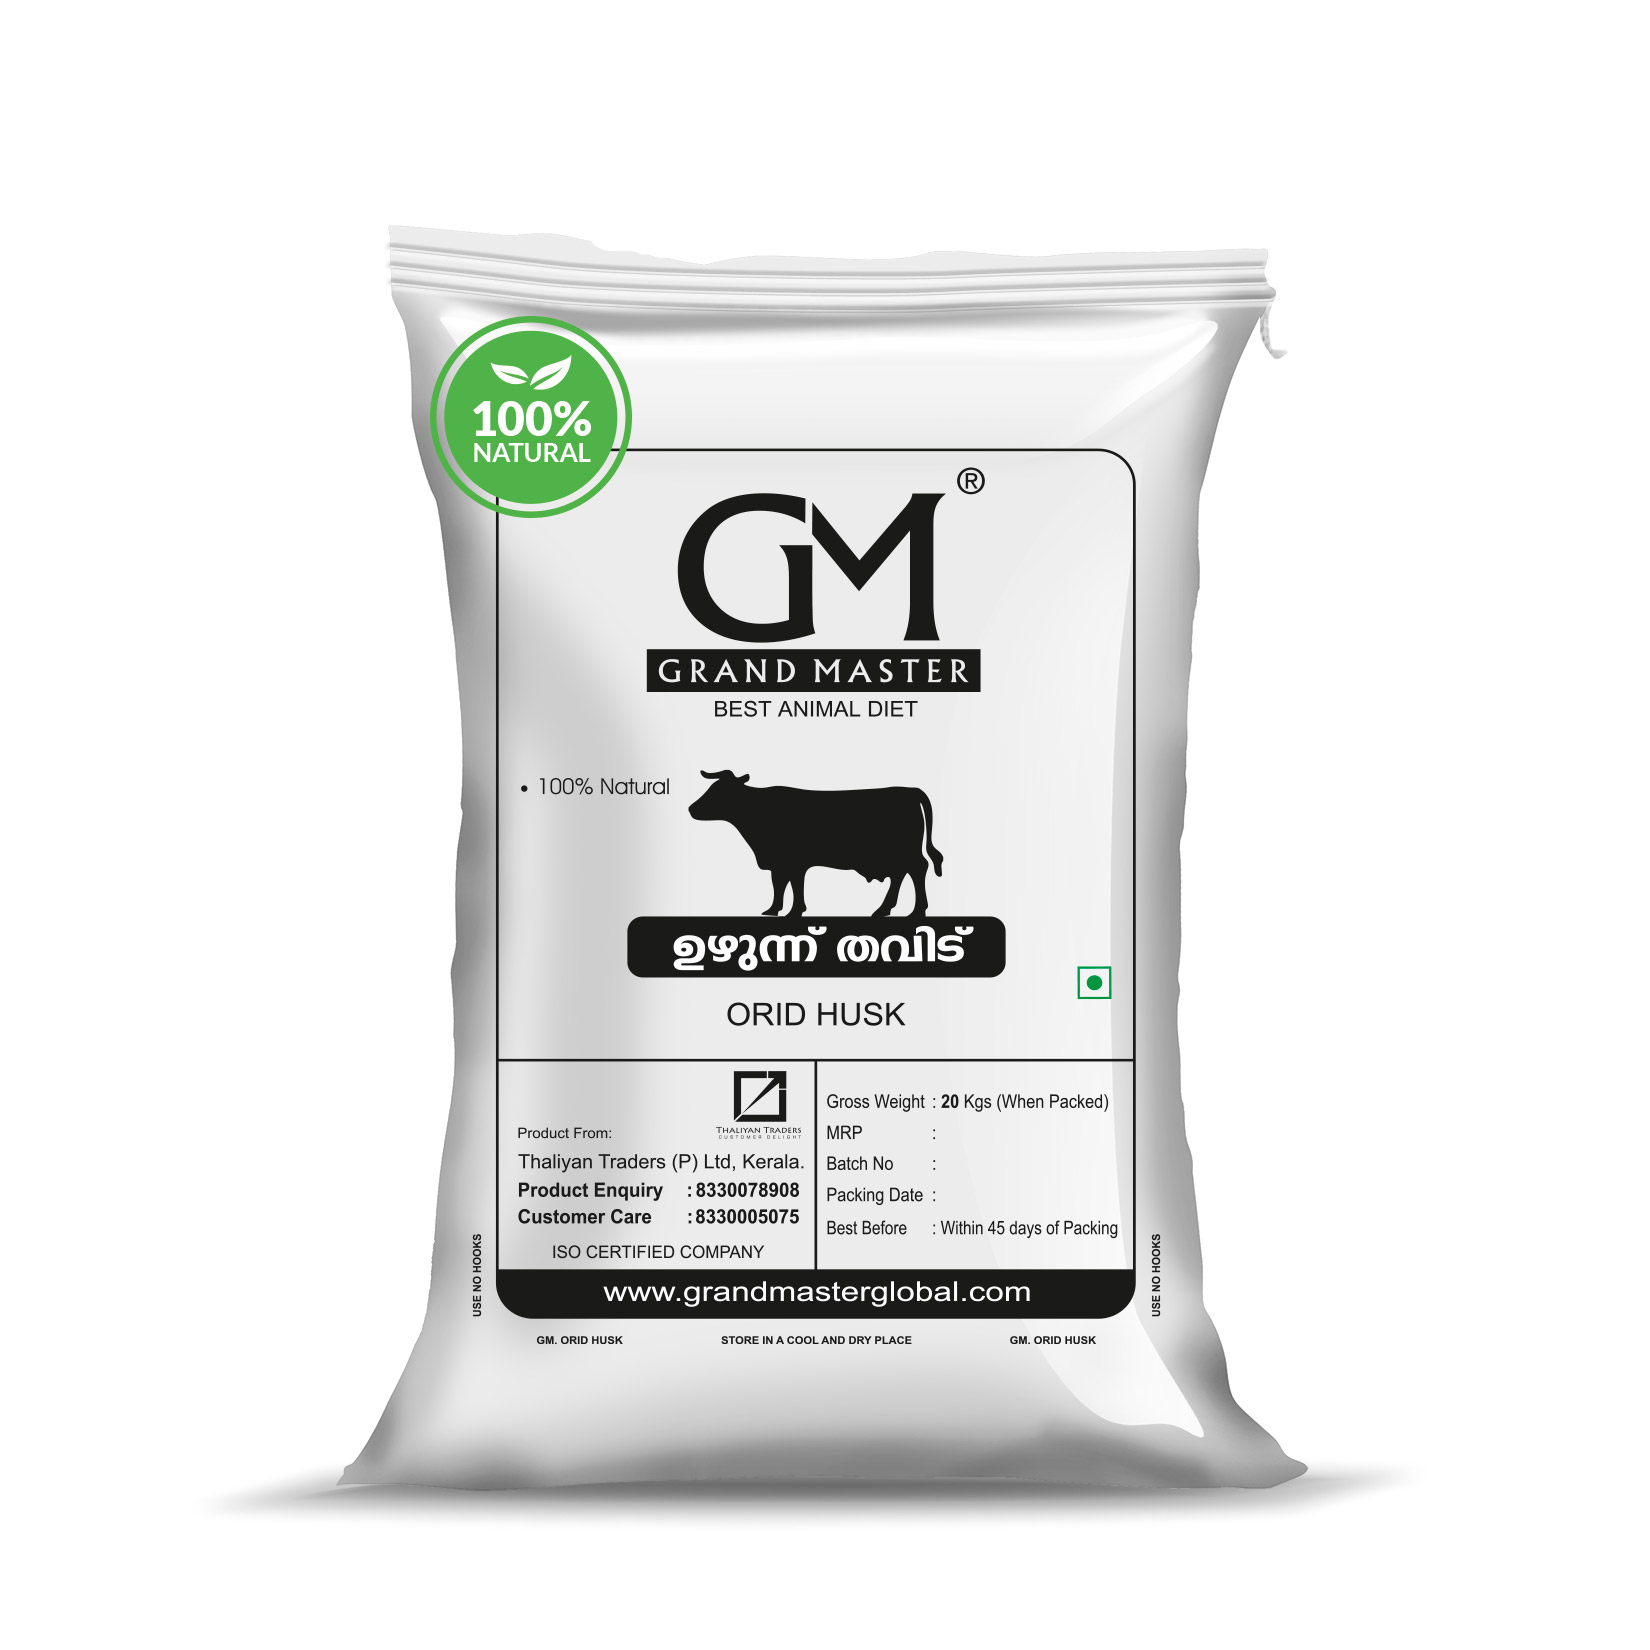 orid husk cattle feed